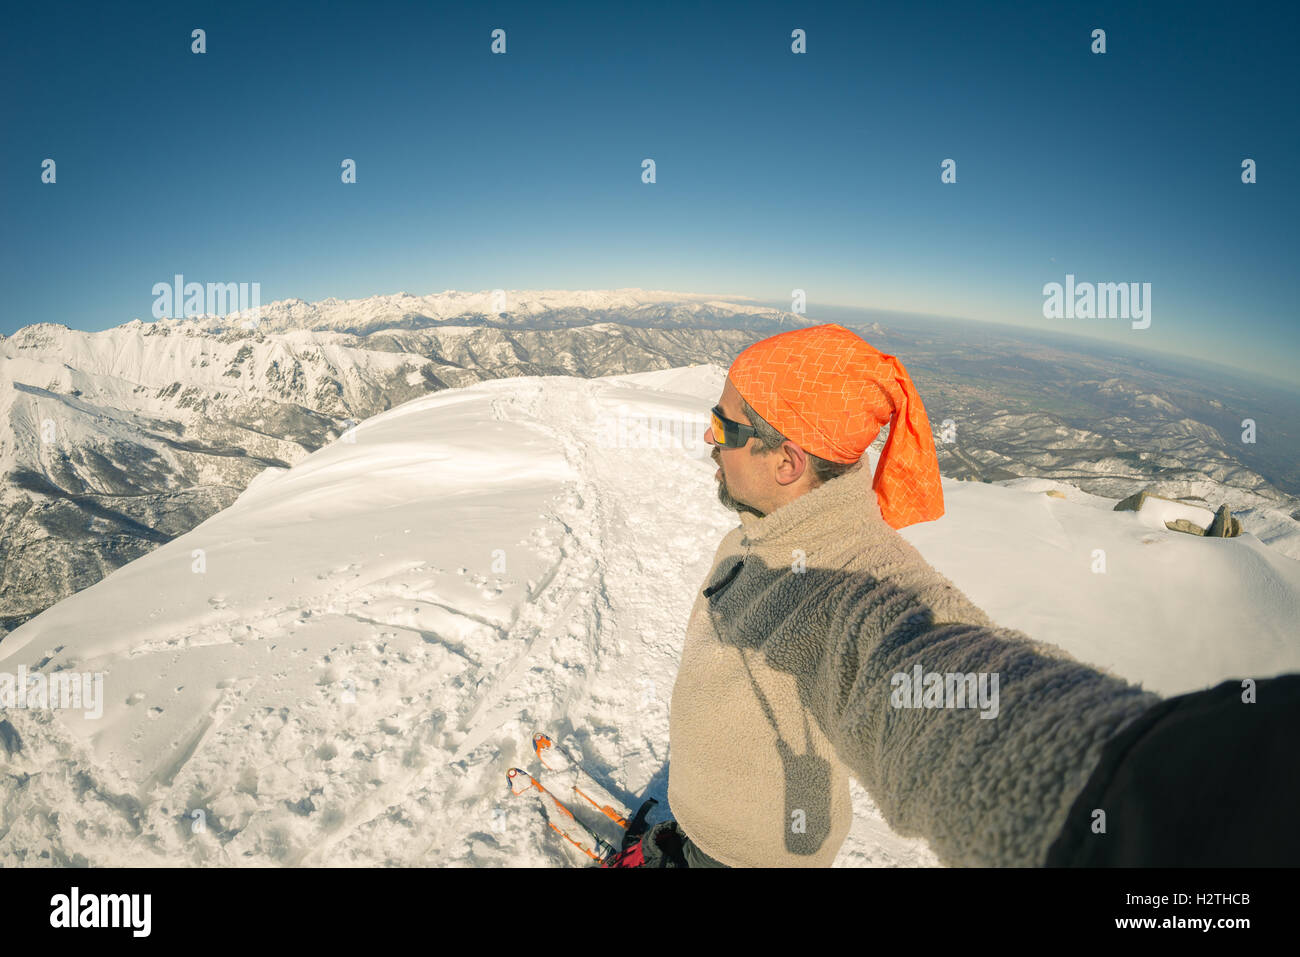 Adult alpin skier with beard, sunglasses and hat, taking selfie on snowy slope in the beautiful italian Alps with - Stock Image